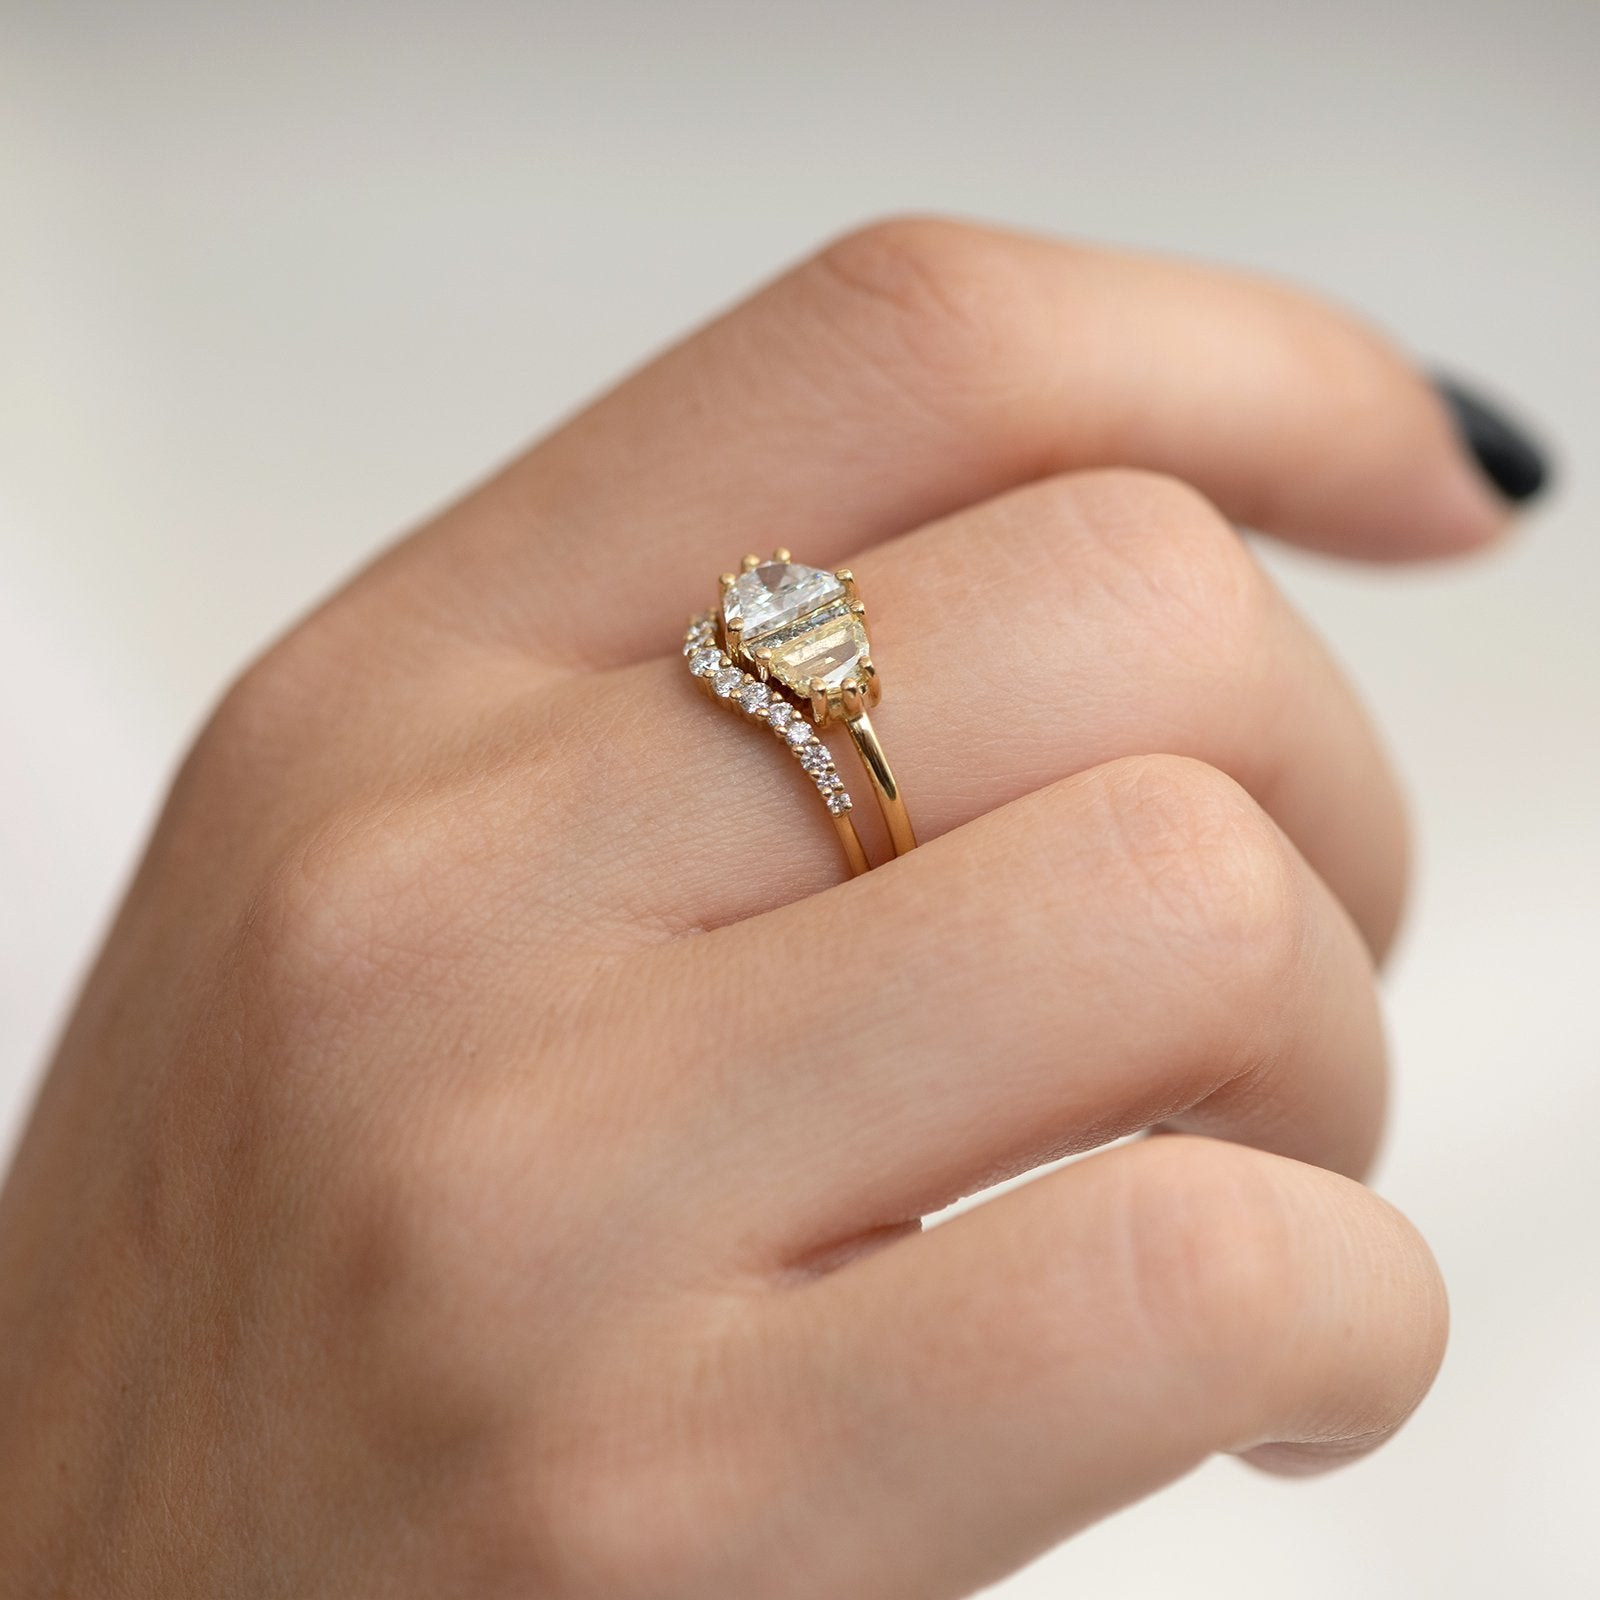 Half Moon Cut Engagement Ring with White, Yellow and Grey Diamonds two rings